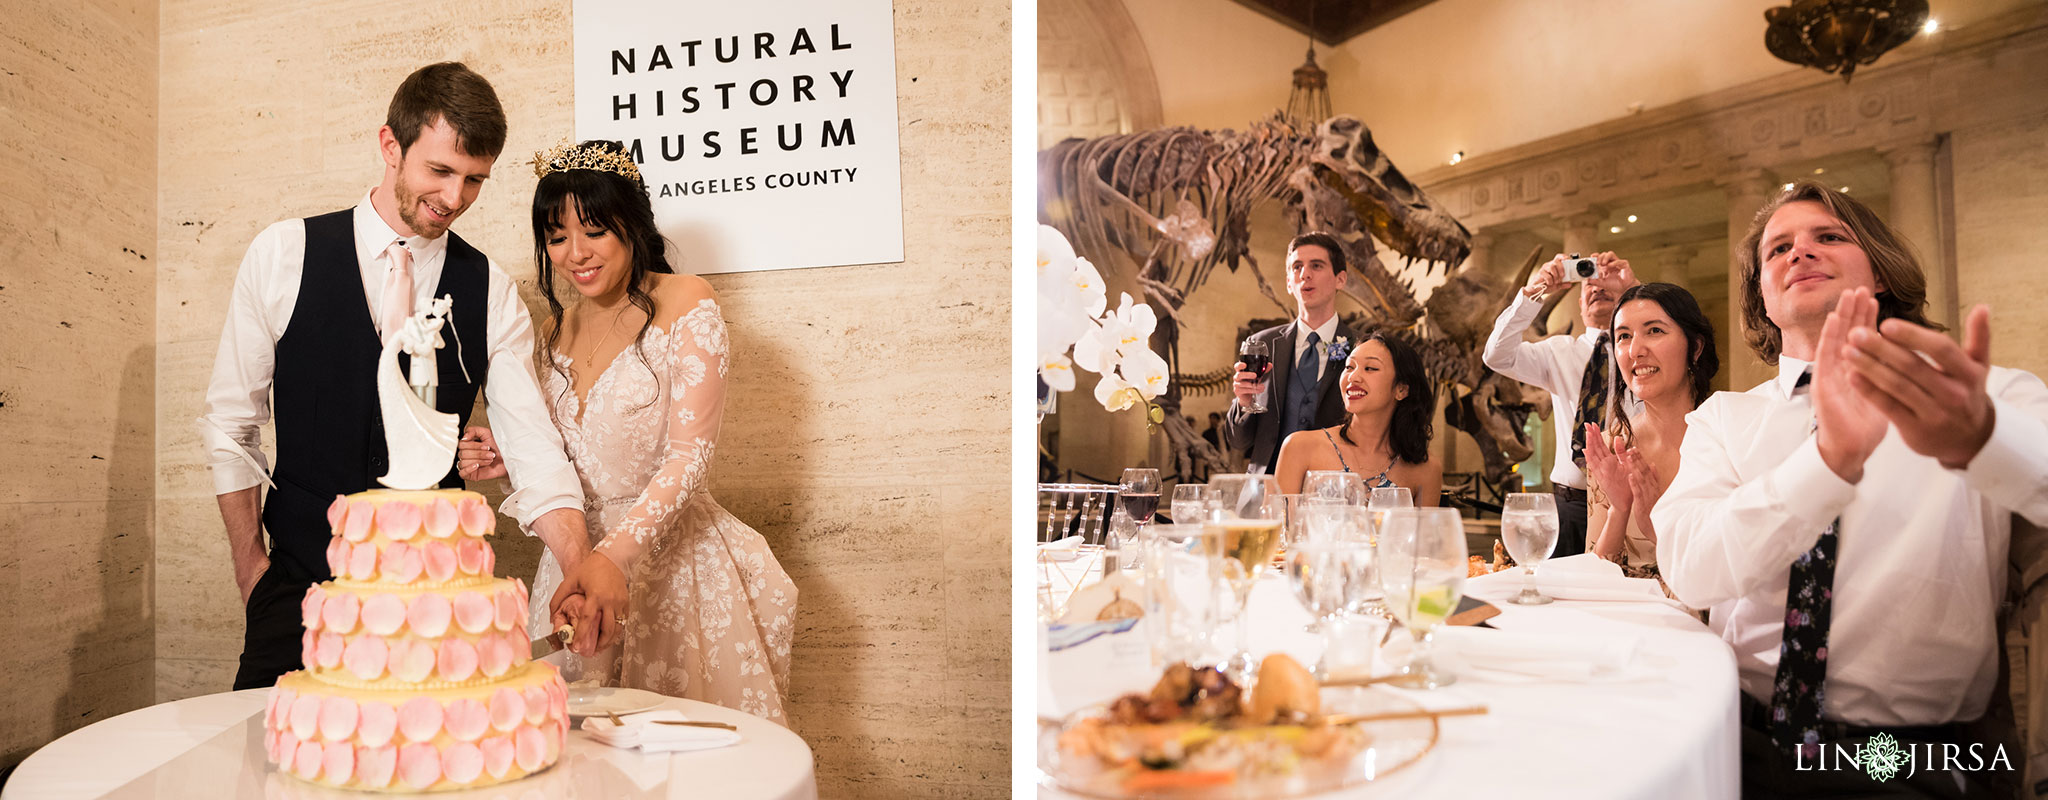 28 los angeles natural history museum wedding photography